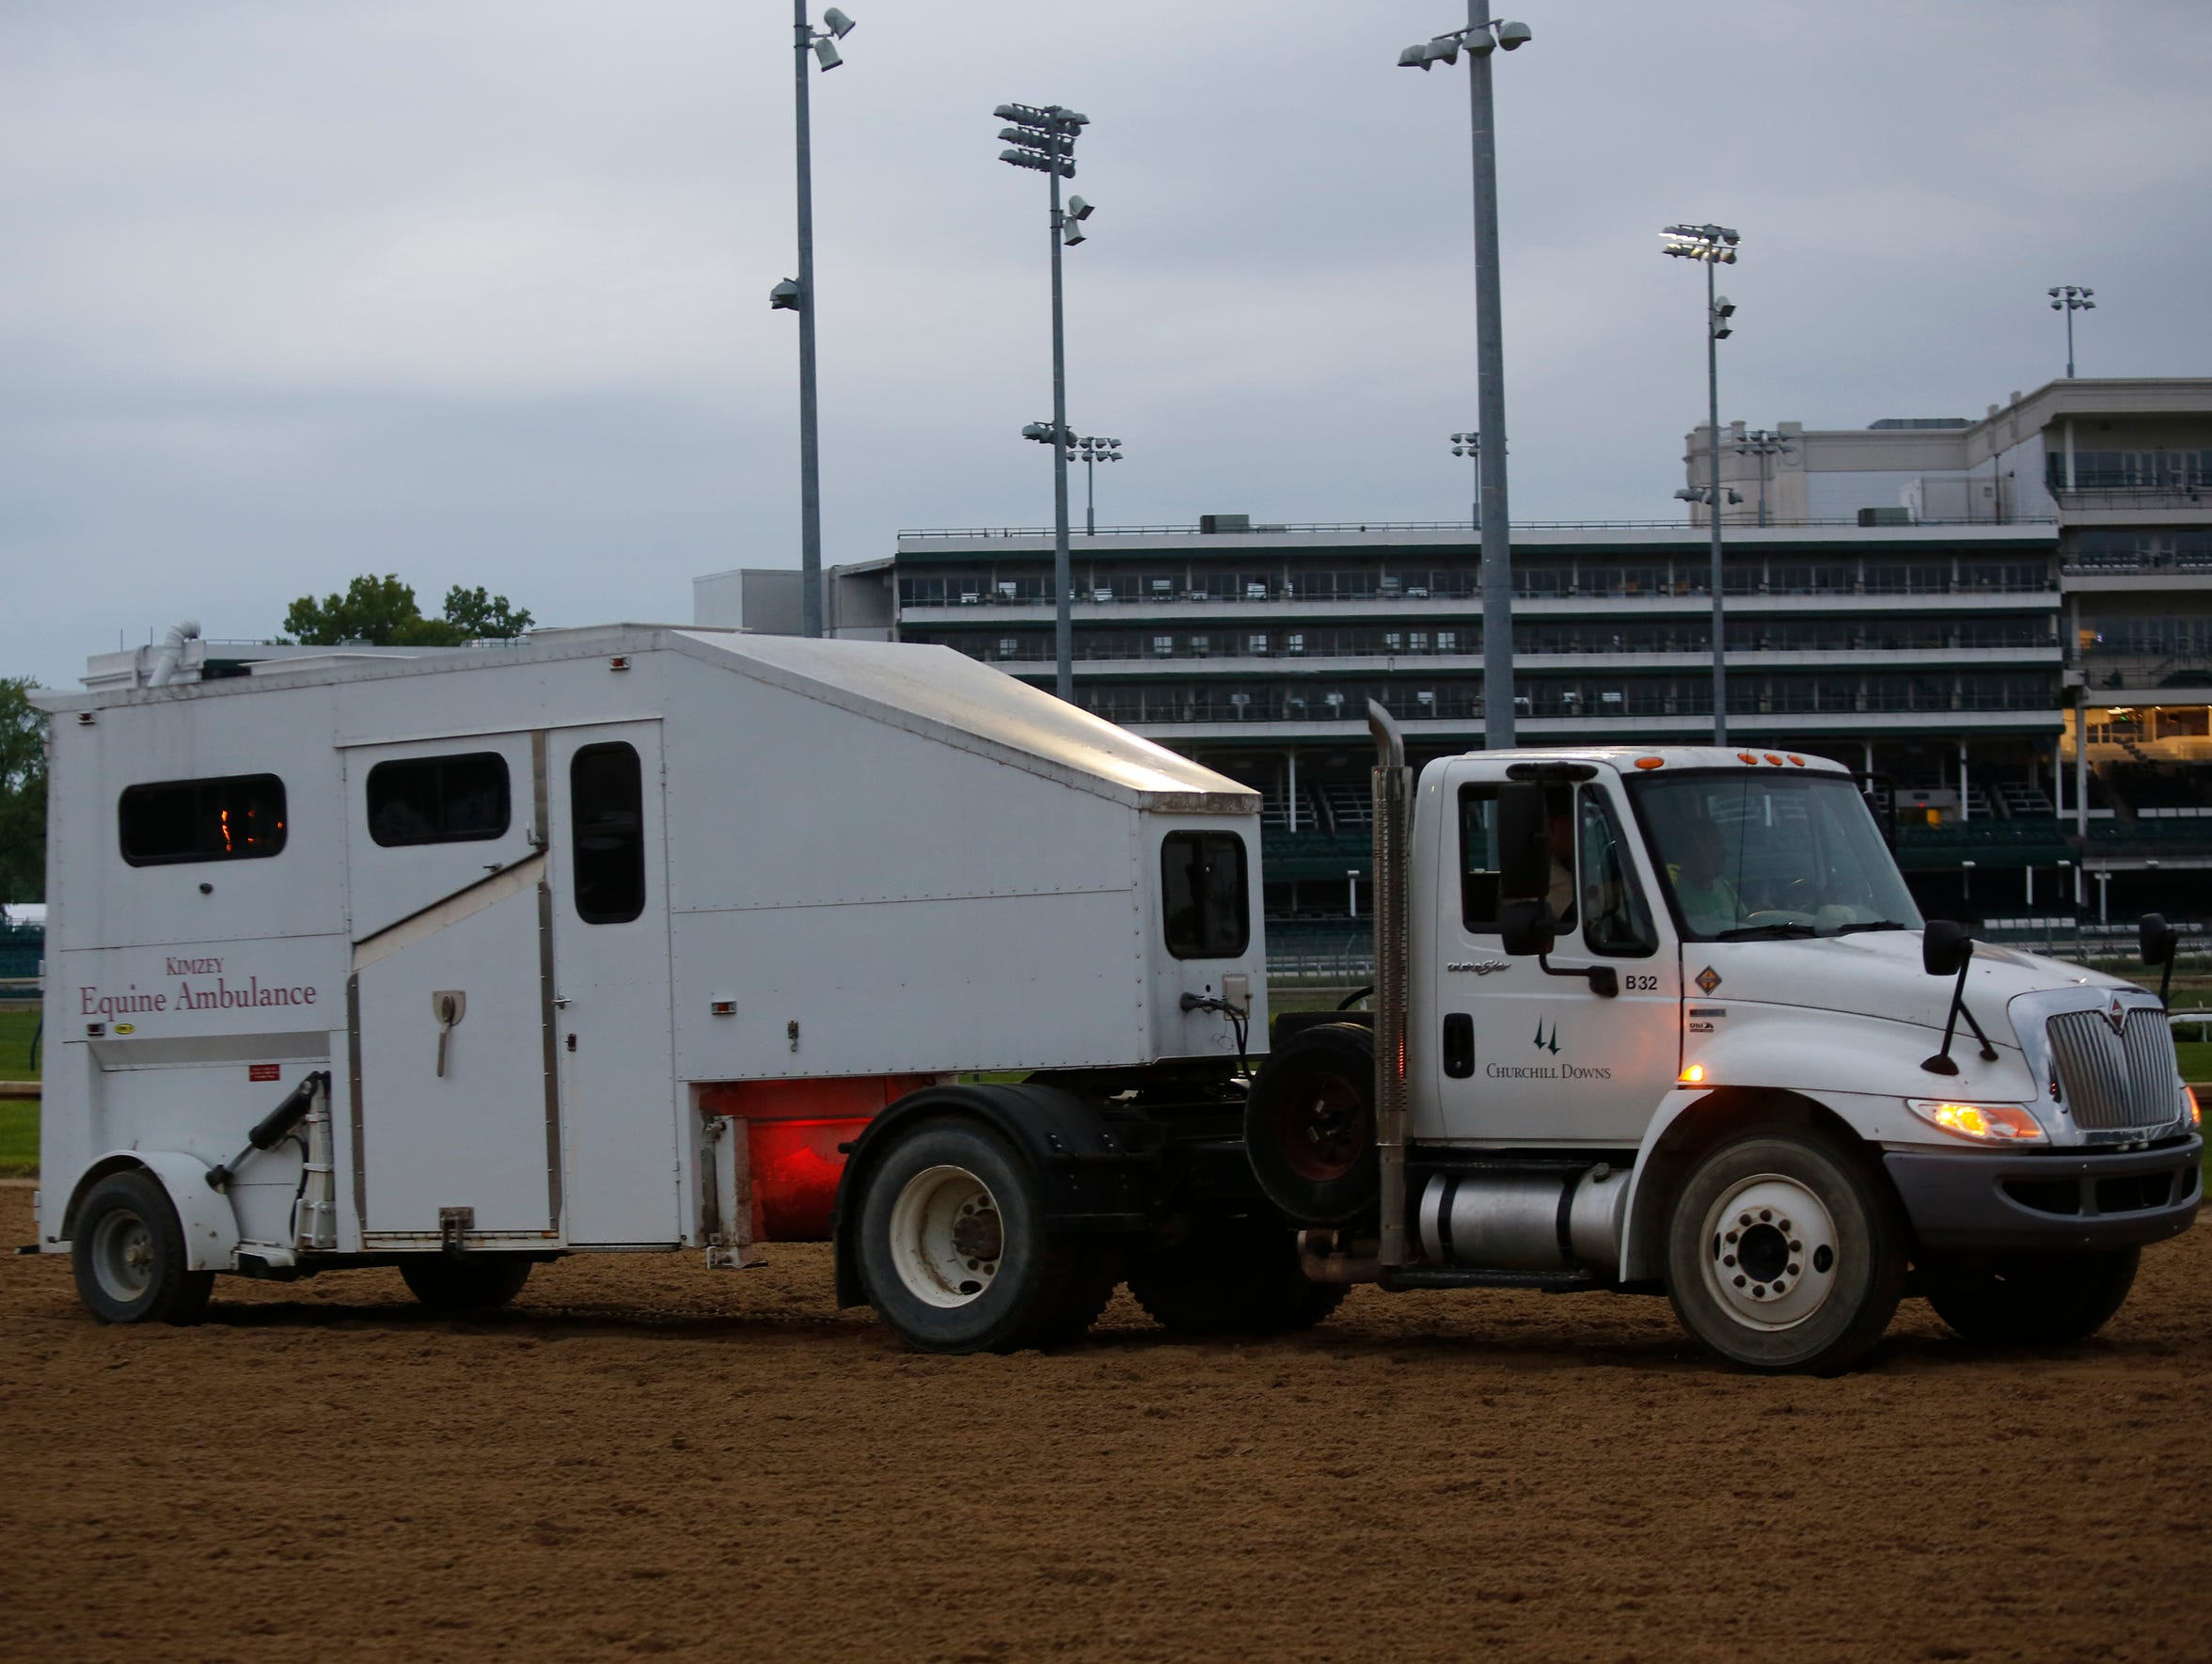 An equine ambulance moves into action.